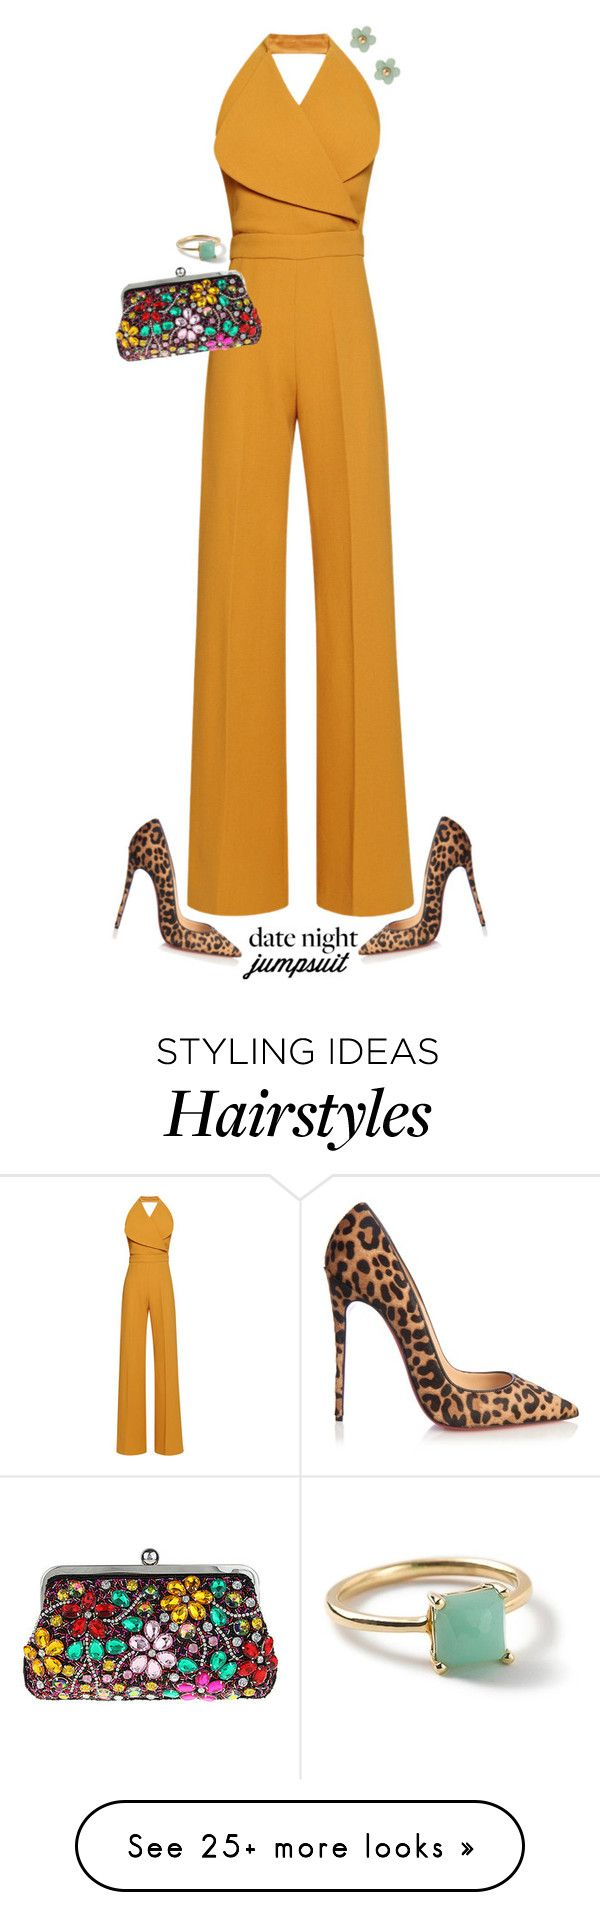 """Date Night in a Jumpsuit"" by acambree on Polyvore featuring Emilia Wickstead, Nina, Ippolita, Christian Louboutin, Accessorize, DateNight and jumpsuit"